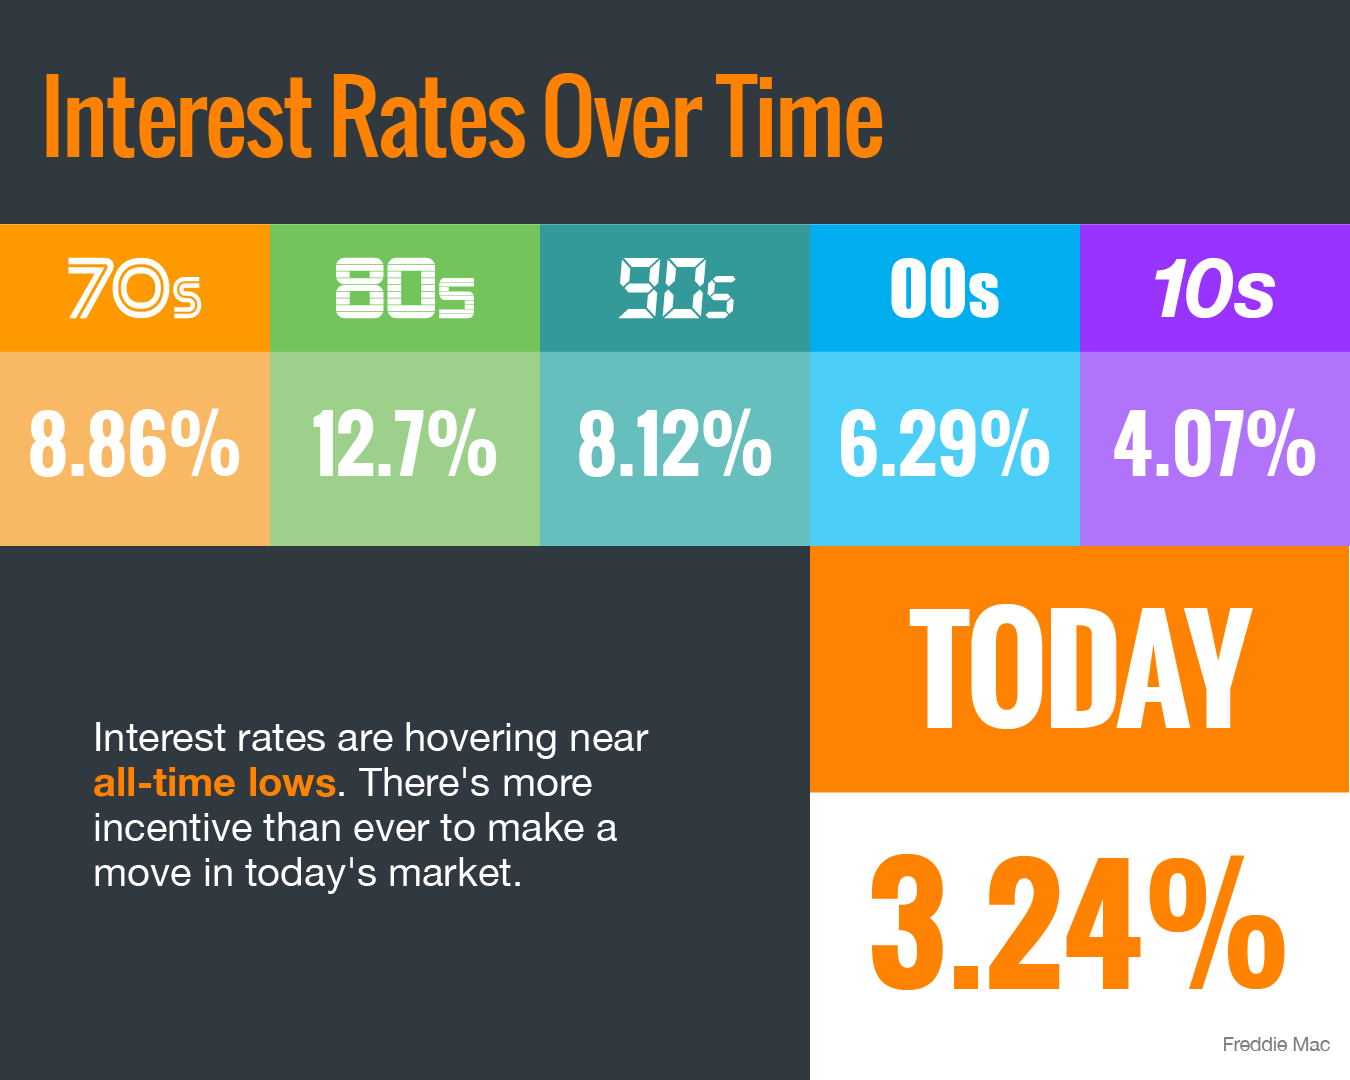 Boston condo interest rates. What causes interest rates to go up or down?